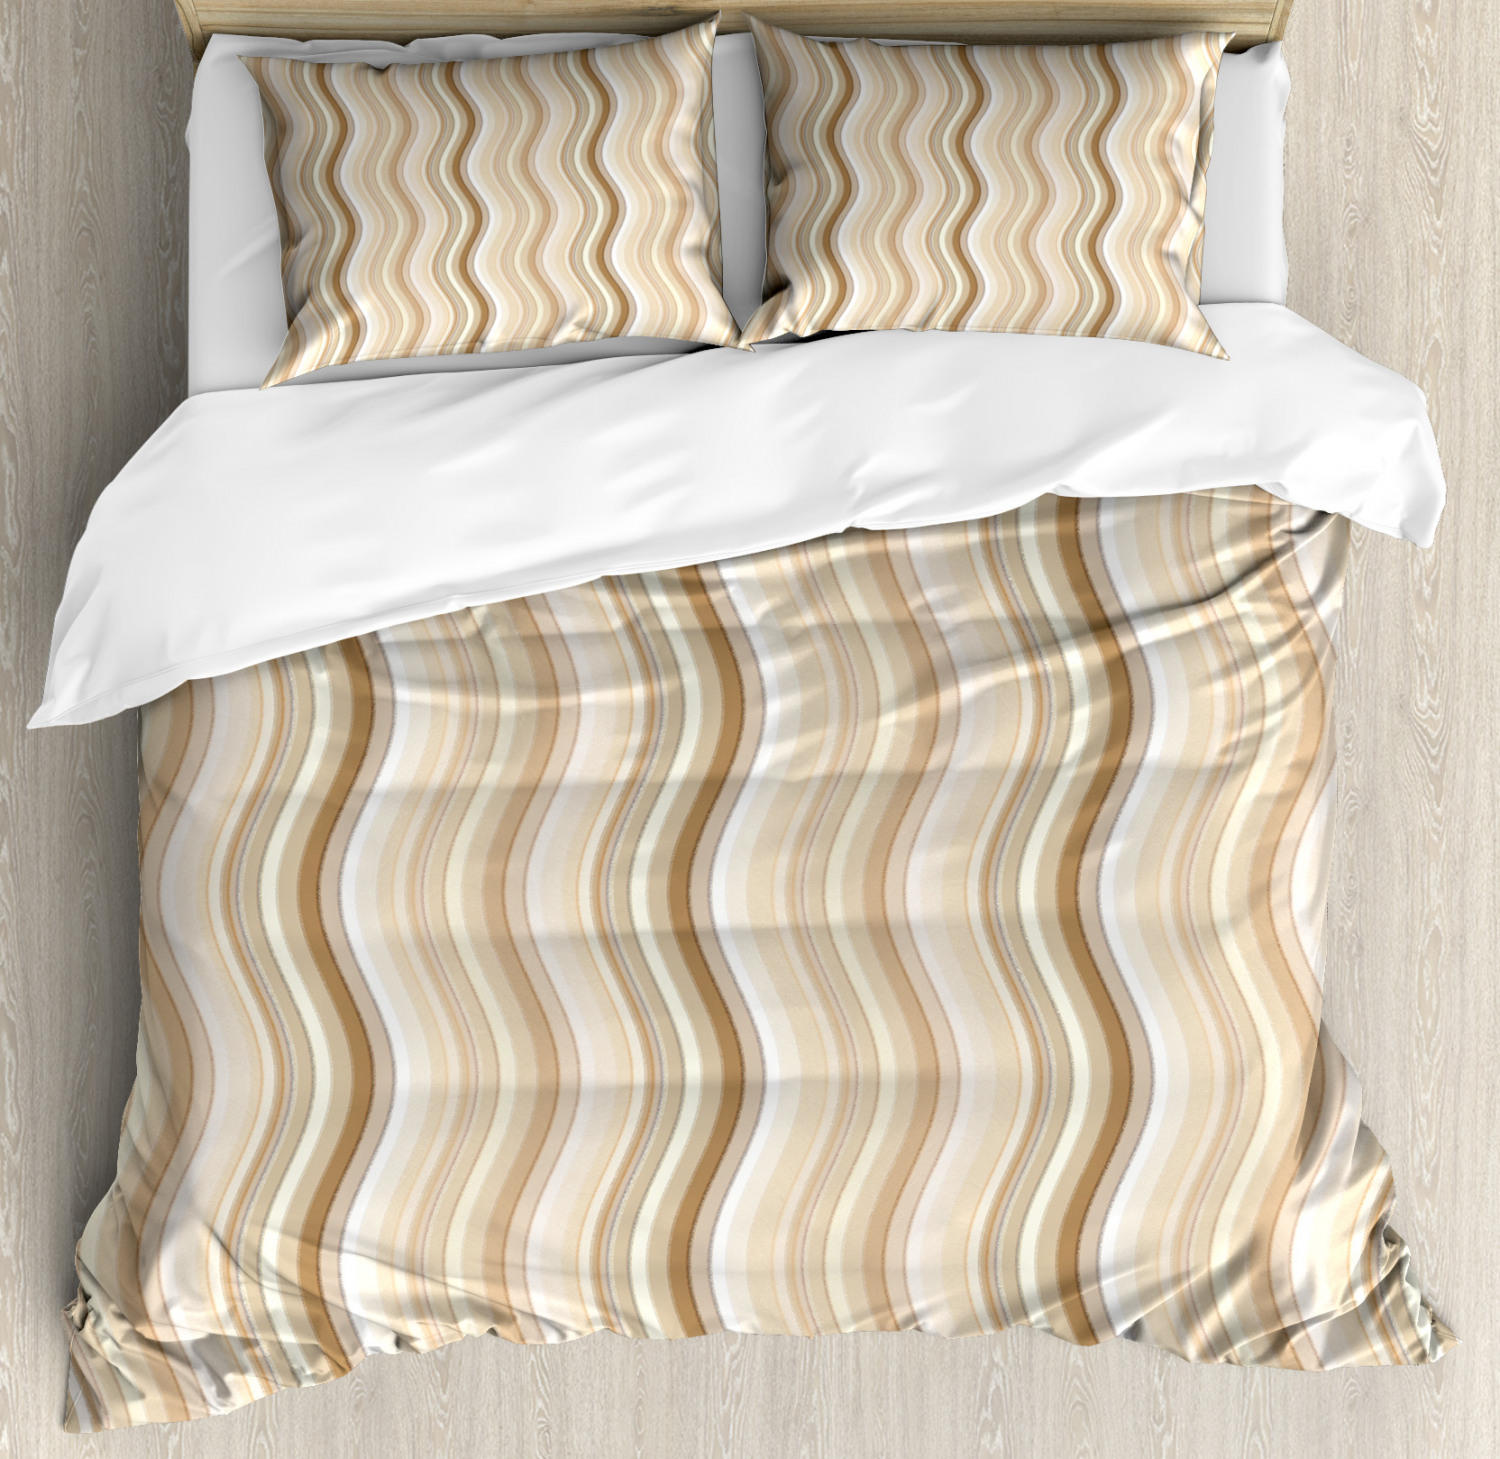 Tan Duvet Cover Set Wavy Curvy Lines Flowing In Vertical Direction Swirl Energy Motion Inspired Decorative Bedding Set With Pillow Shams Pale Brown Tan White By Ambesonne Walmart Com Walmart Com